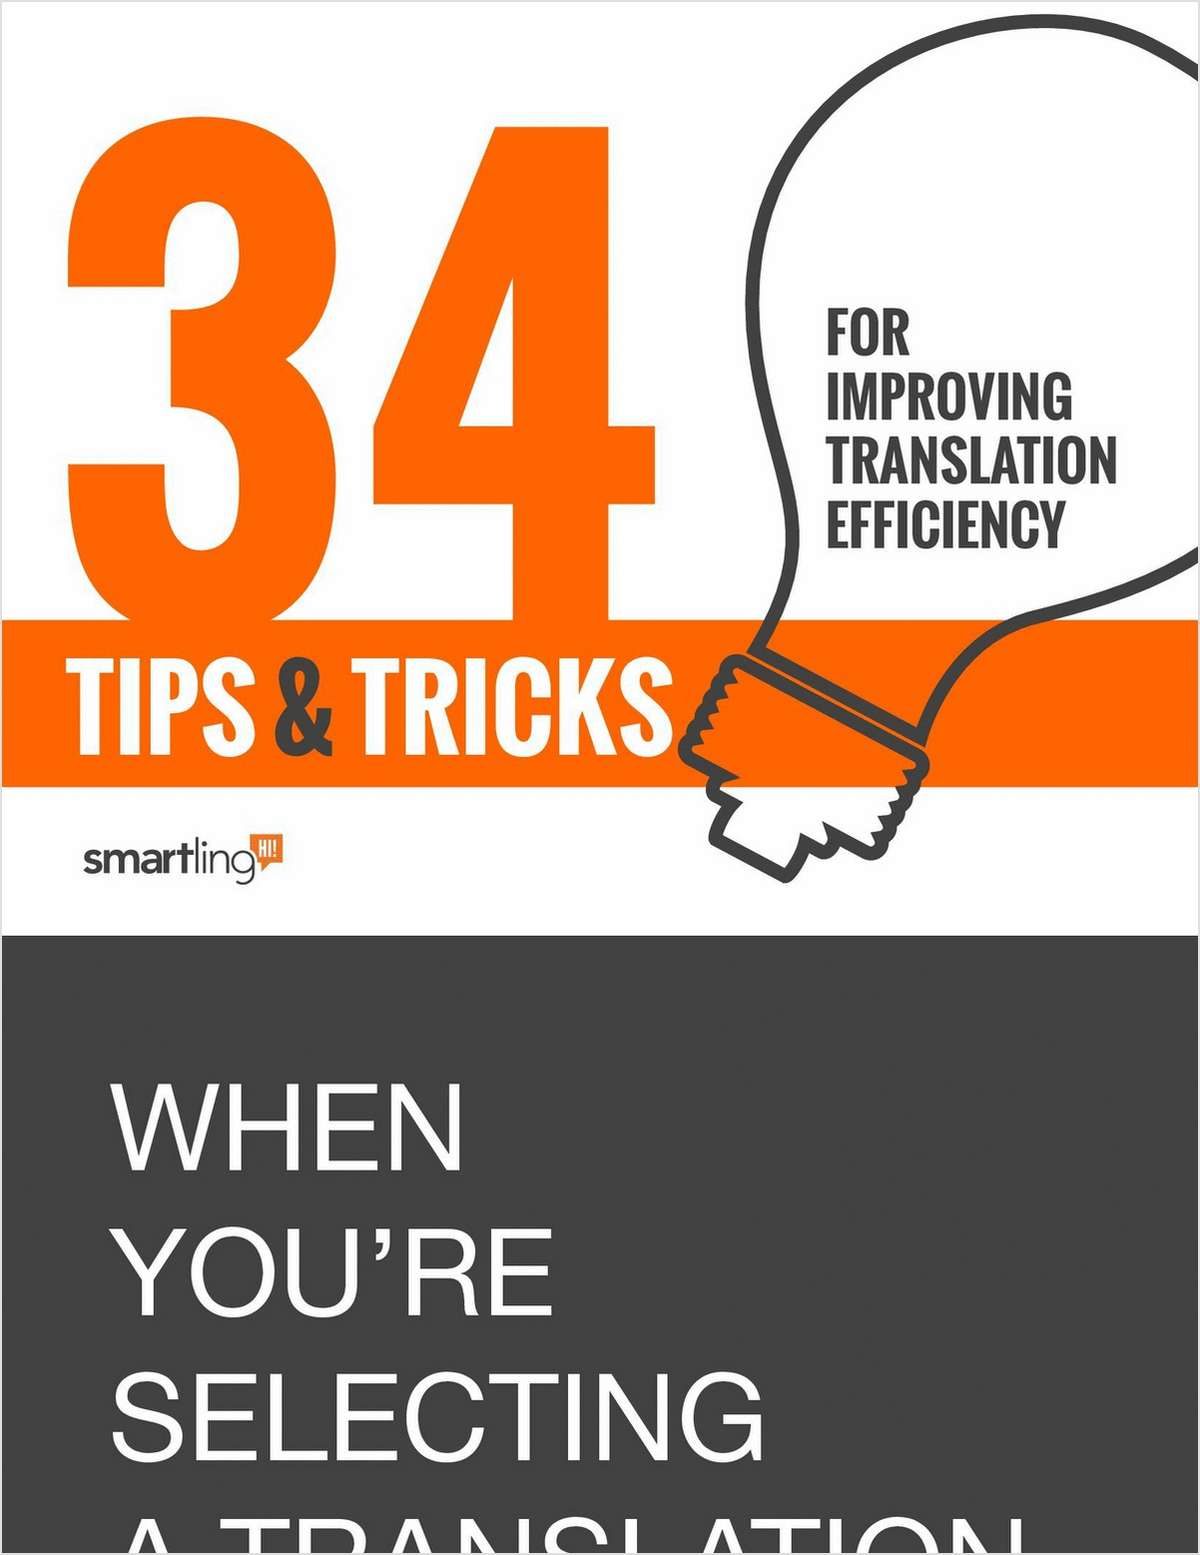 34 Tips & Tricks for Improving Translation Efficiency